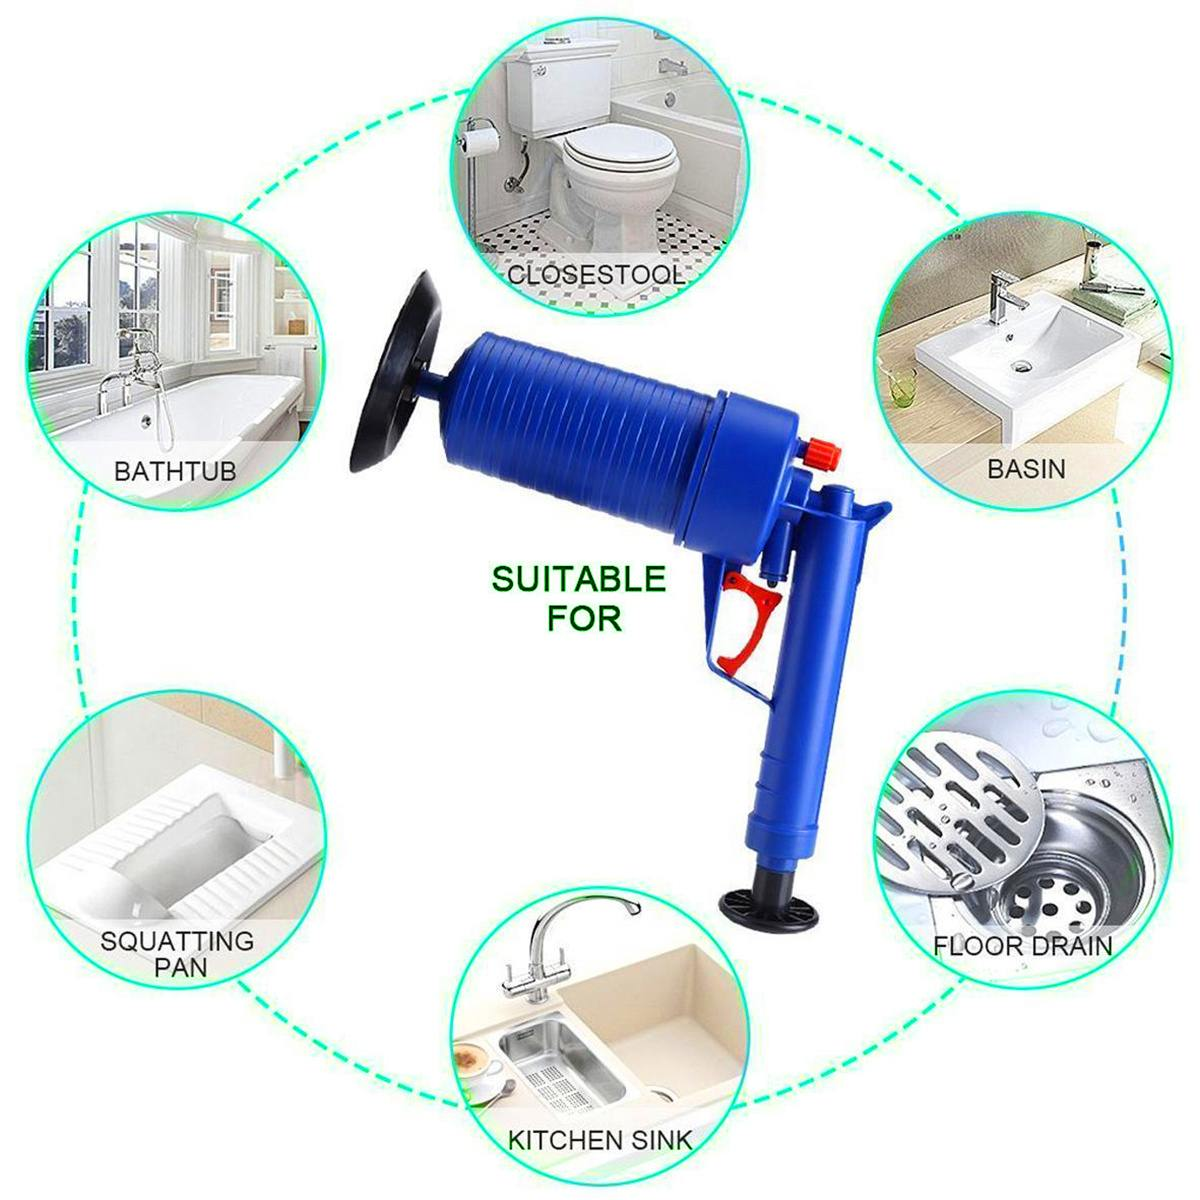 US $11 51 52% OFF Home Dredge Plug Air Pump Blockage Remover Sewer Sinks  Blocked Cleaning Kit Pipe Plunger Bathroom Toilet Pump Drain Cleaners-in